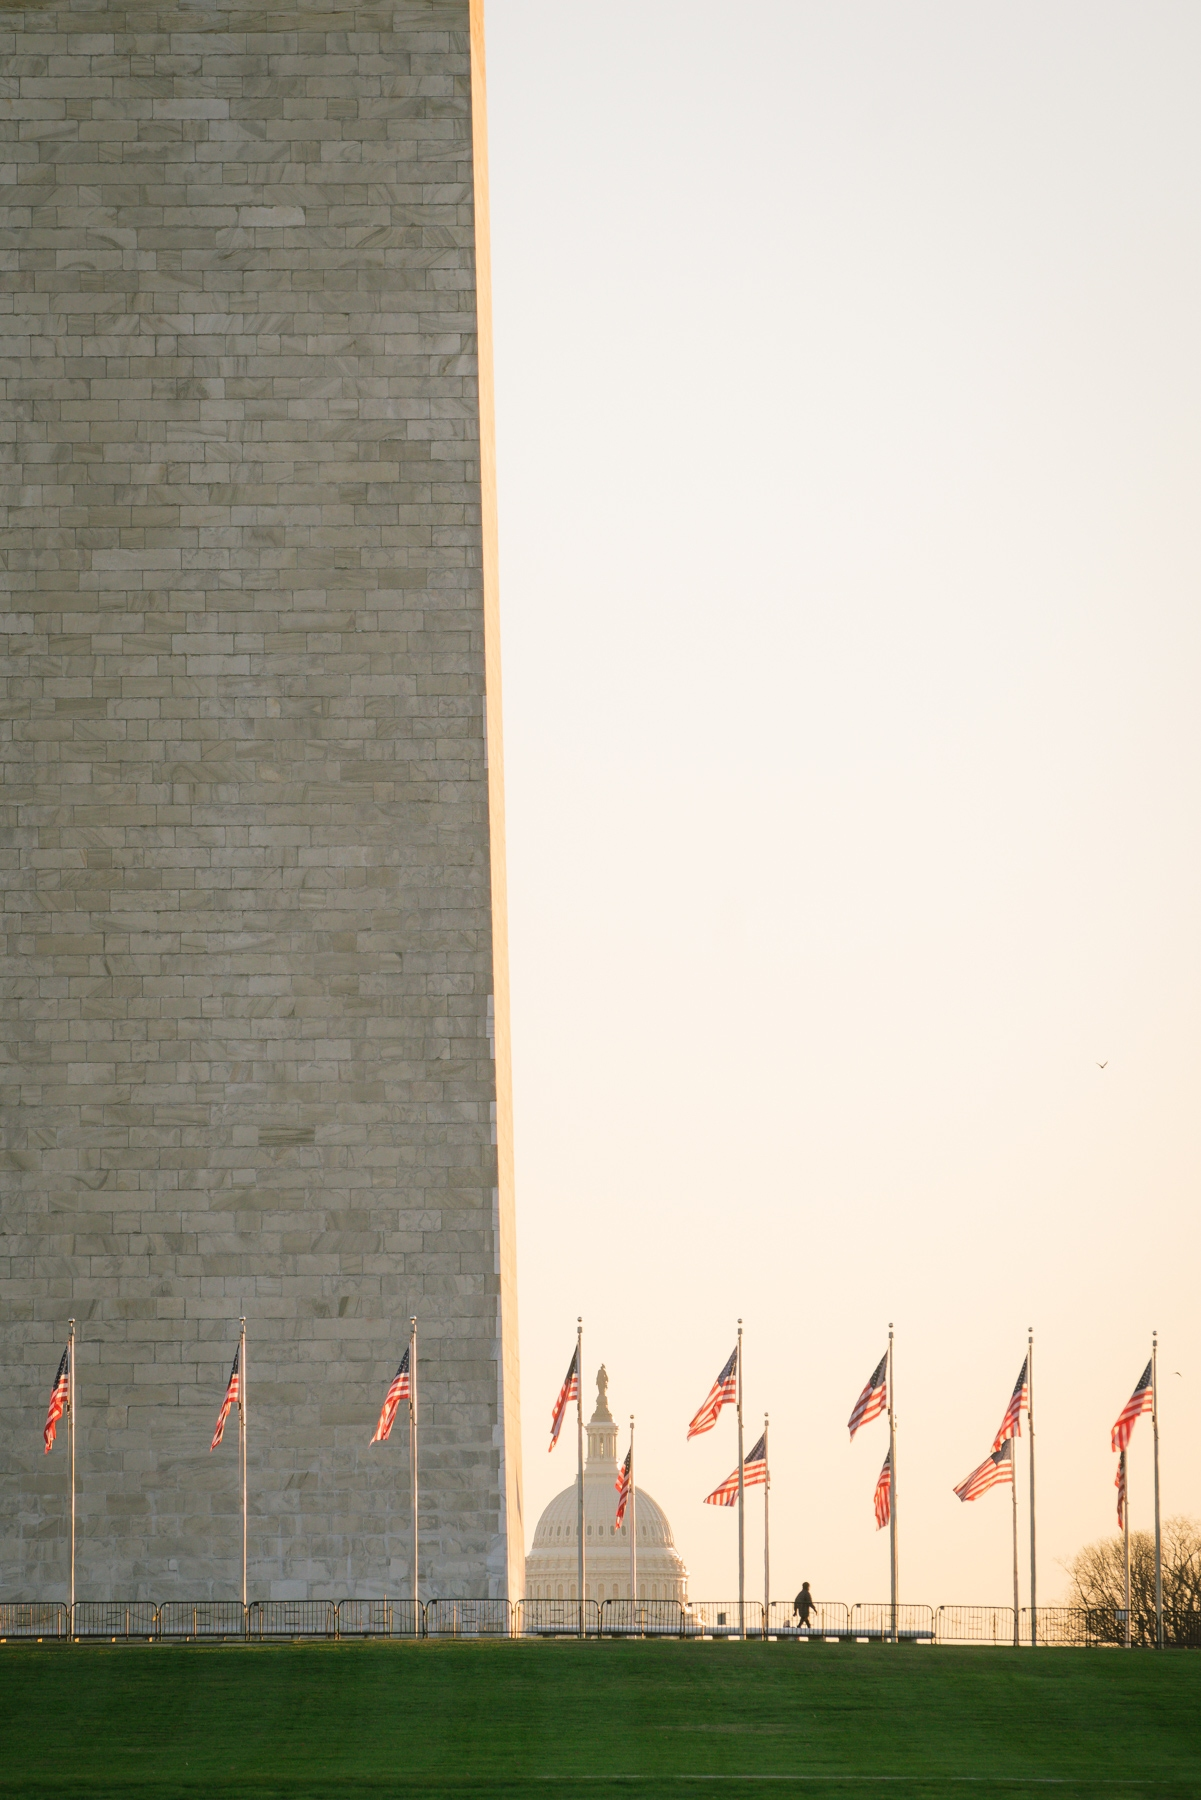 washington monument, american flags, early morning, sunrise, national mall, wwii memorial, world war ii memorial, us capitol dome